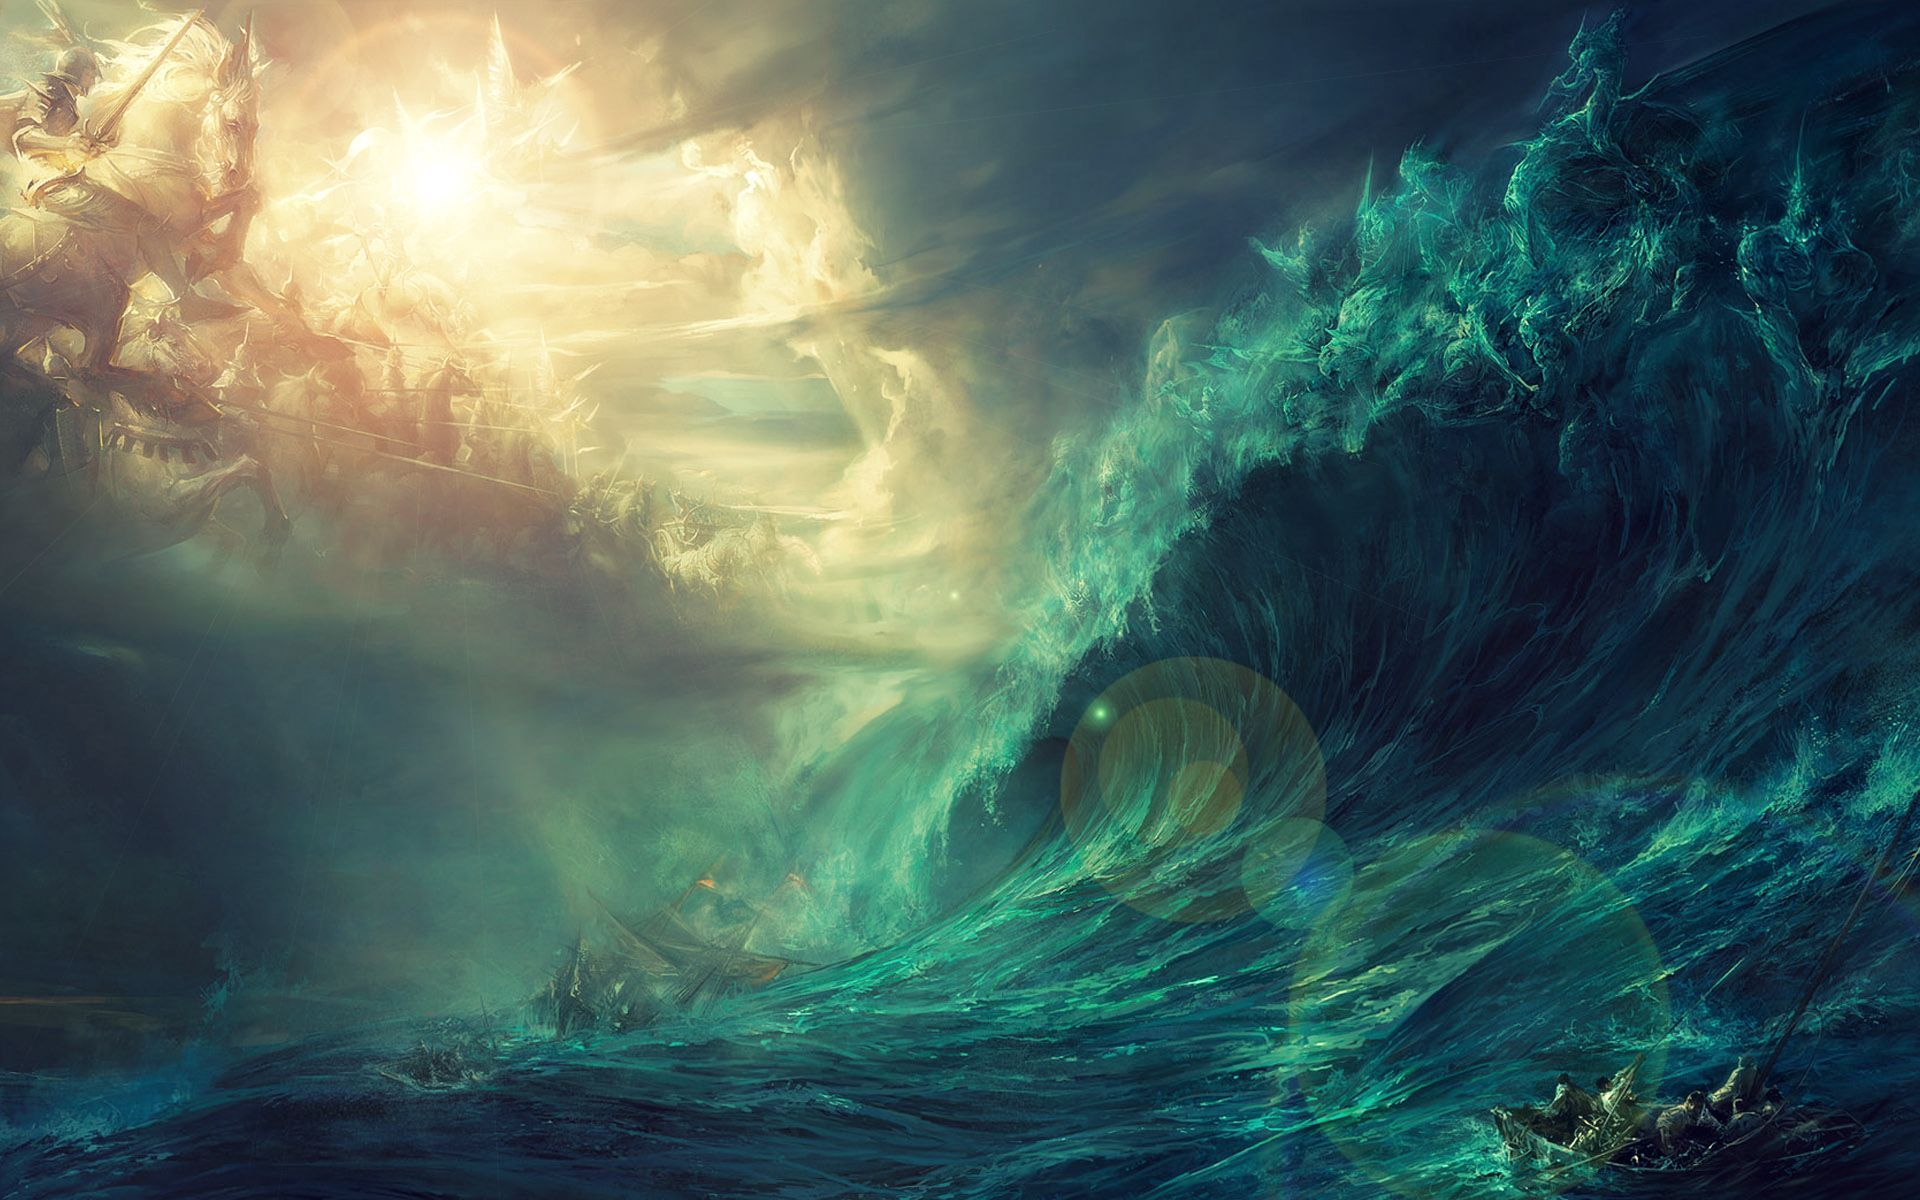 MvP Treino | Newt Flower War-at-the-stormy-sea-fantasy-hd-wallpaper-1920x1200-1472